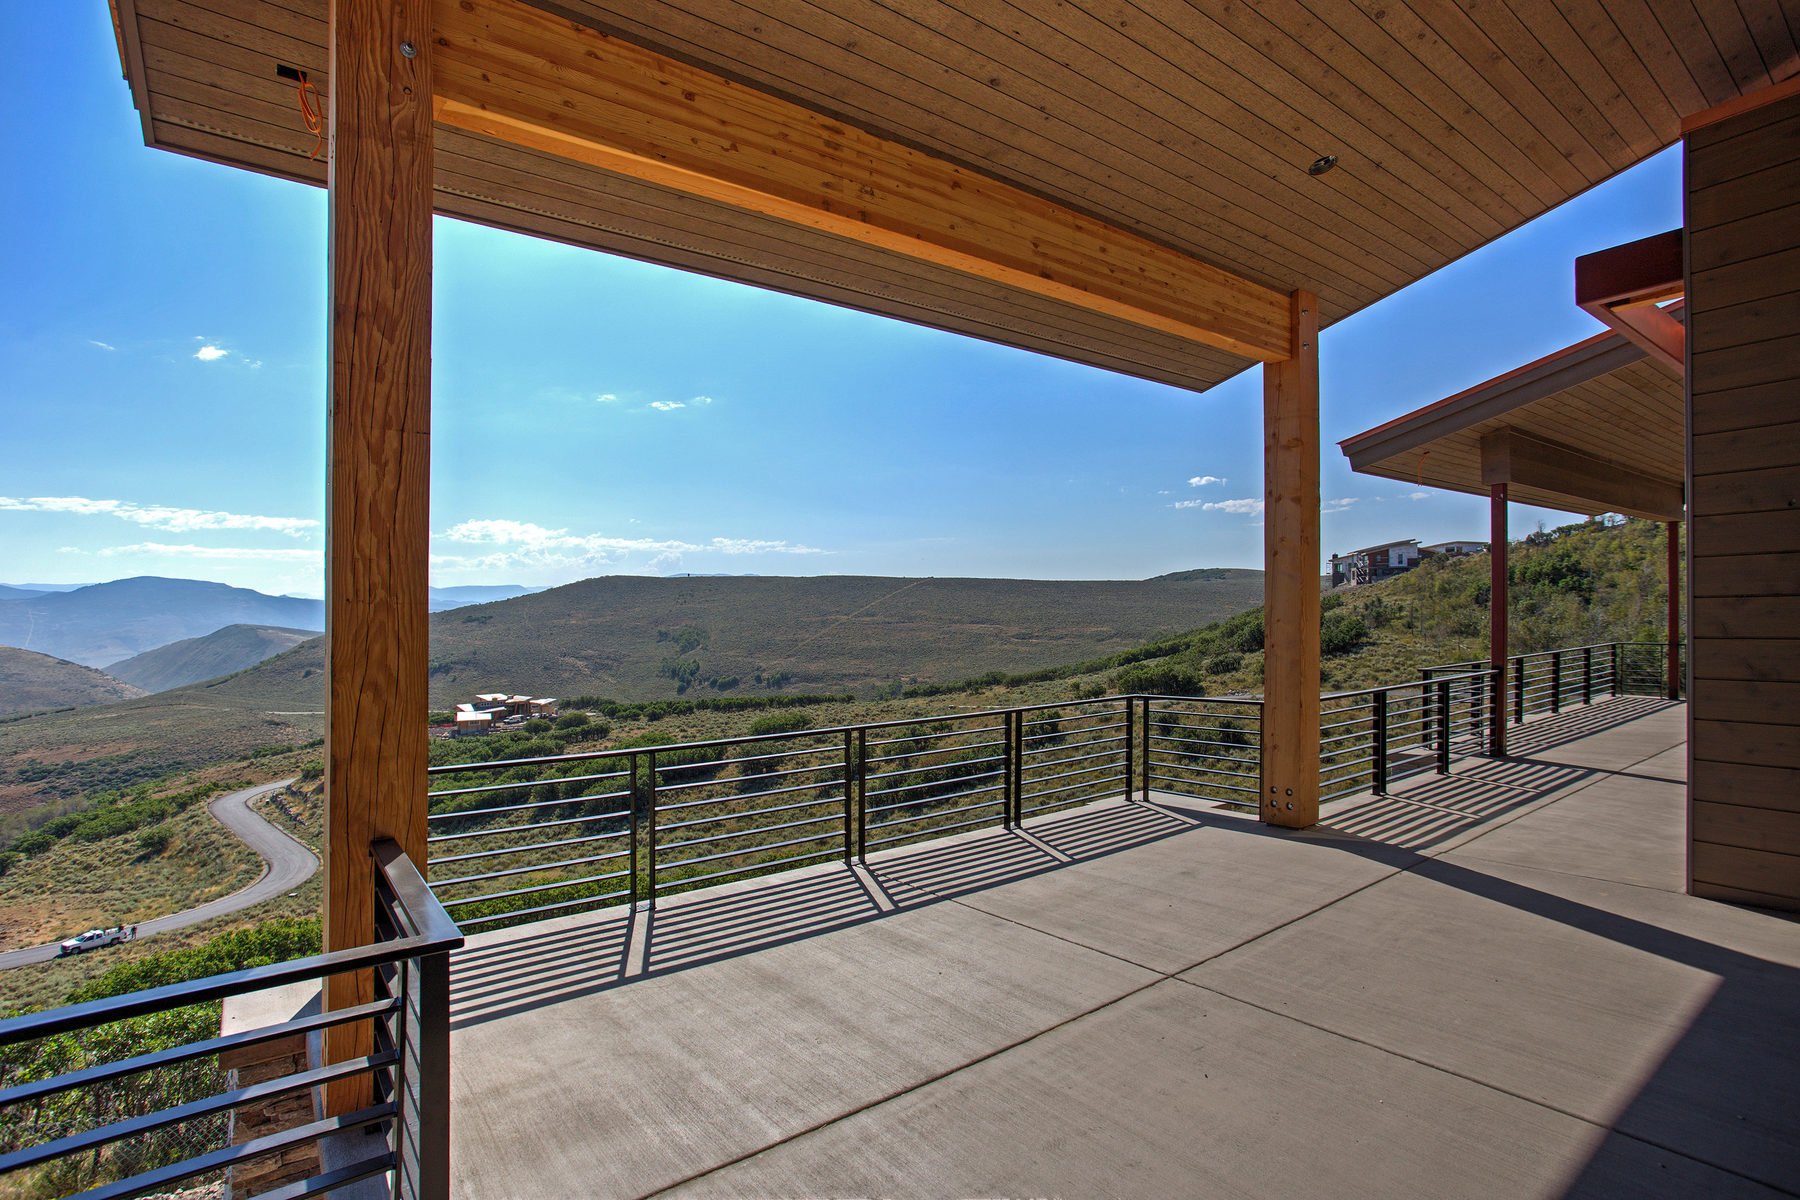 Terreno para Venda às Awesome Mountain View 7692 N Fire Ring Glade Park City, Utah, 84098 Estados Unidos